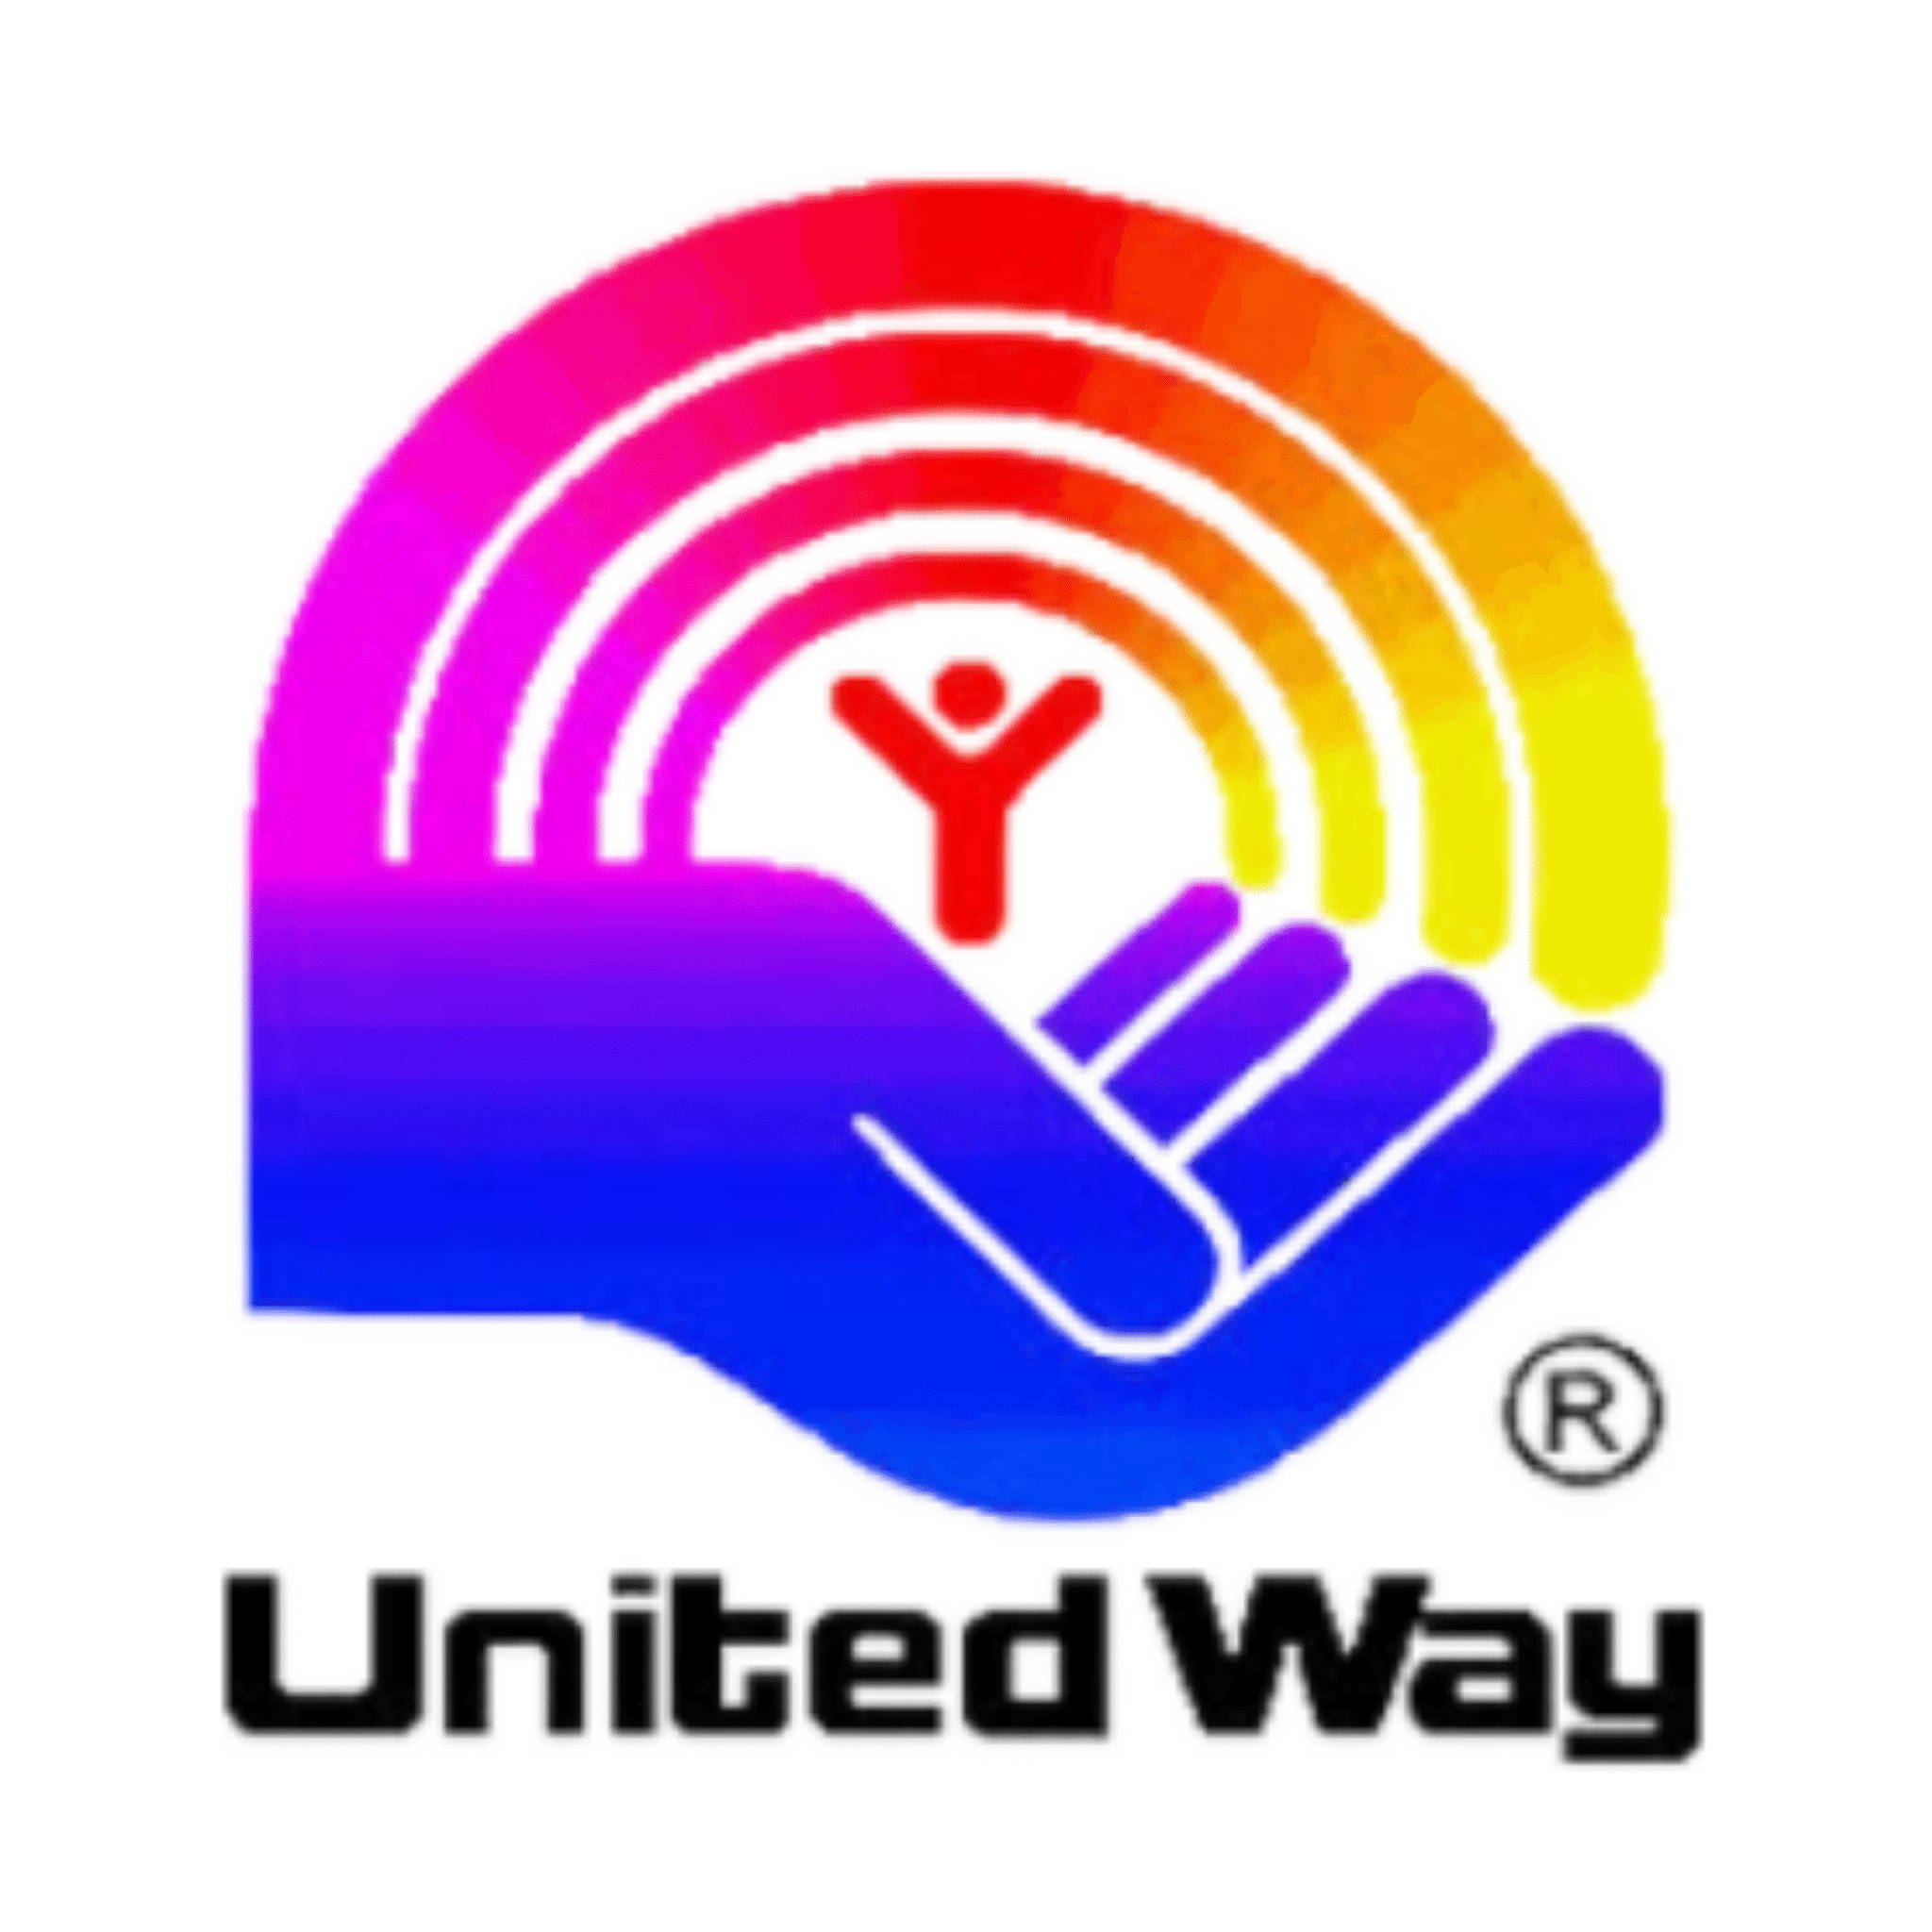 United Way partnered charity with Haven Mattress